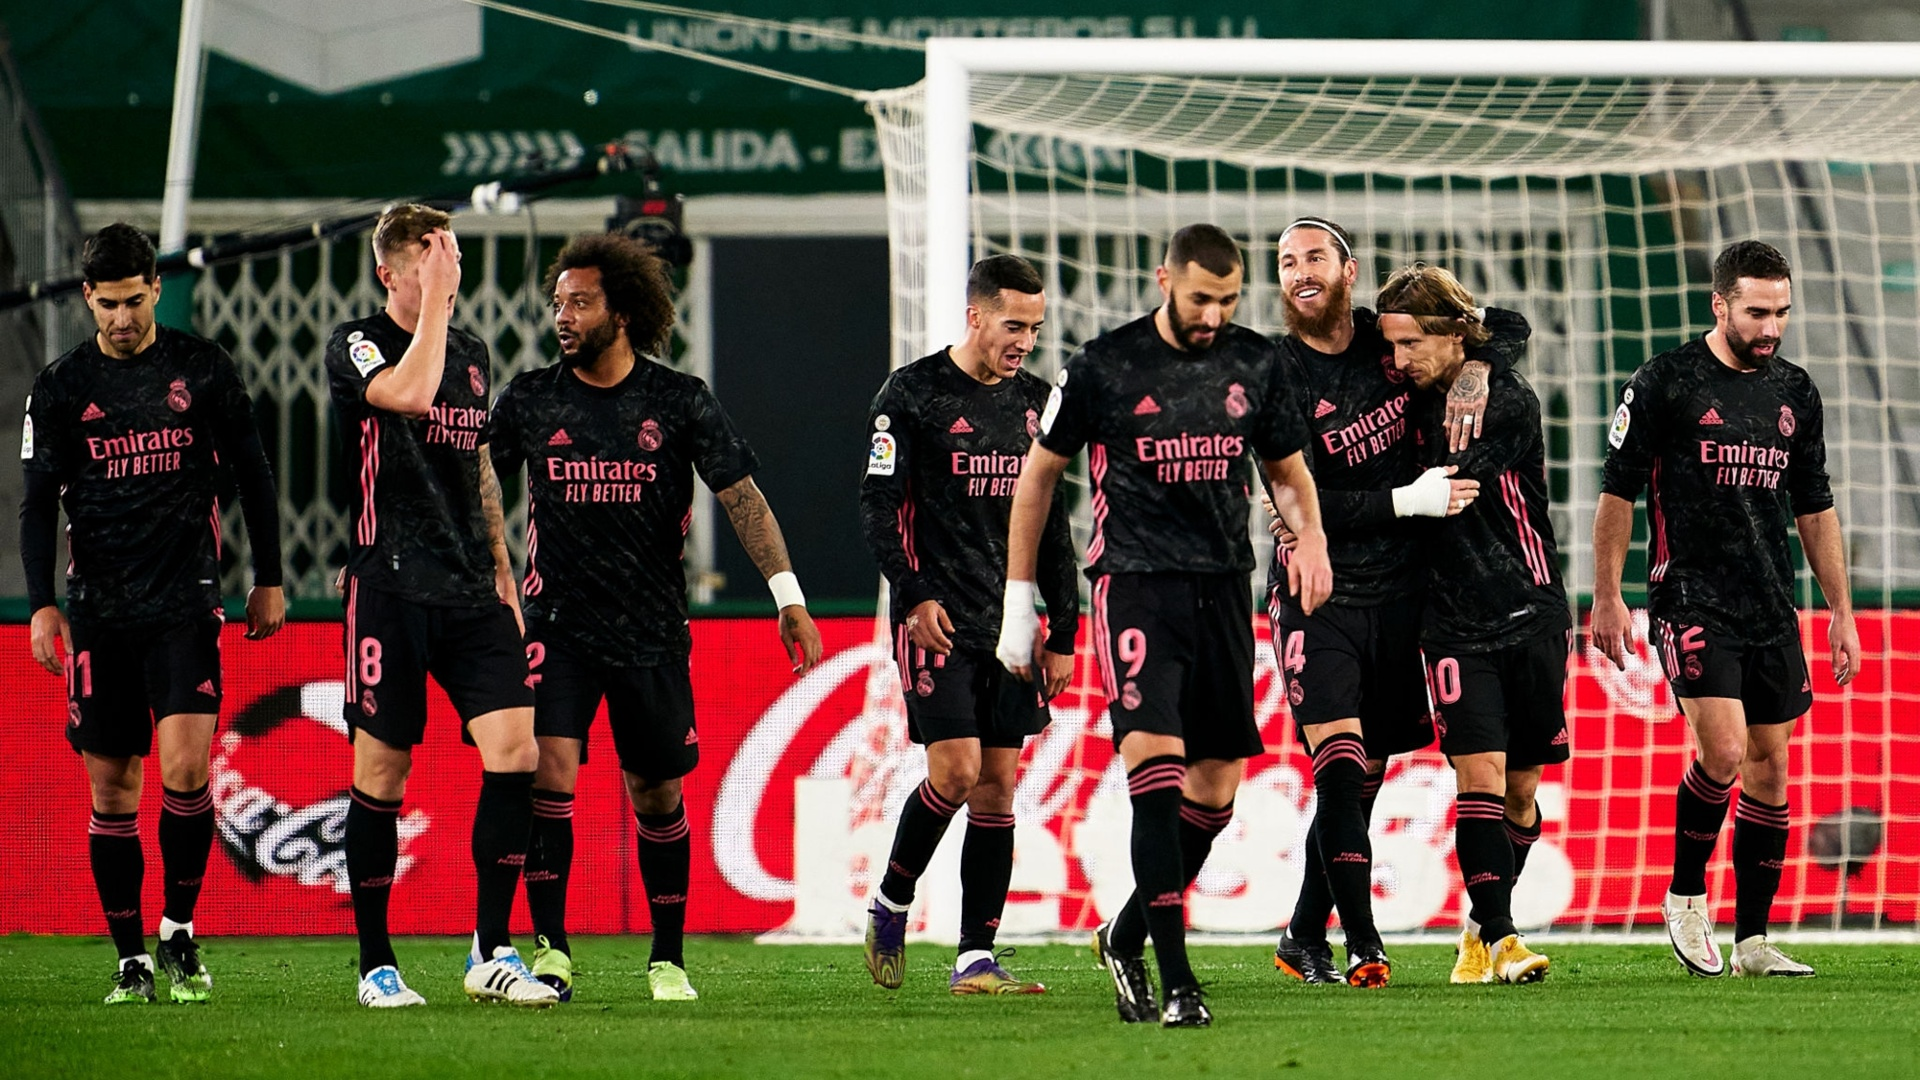 Match Report: Elche 1-1 Real Madrid